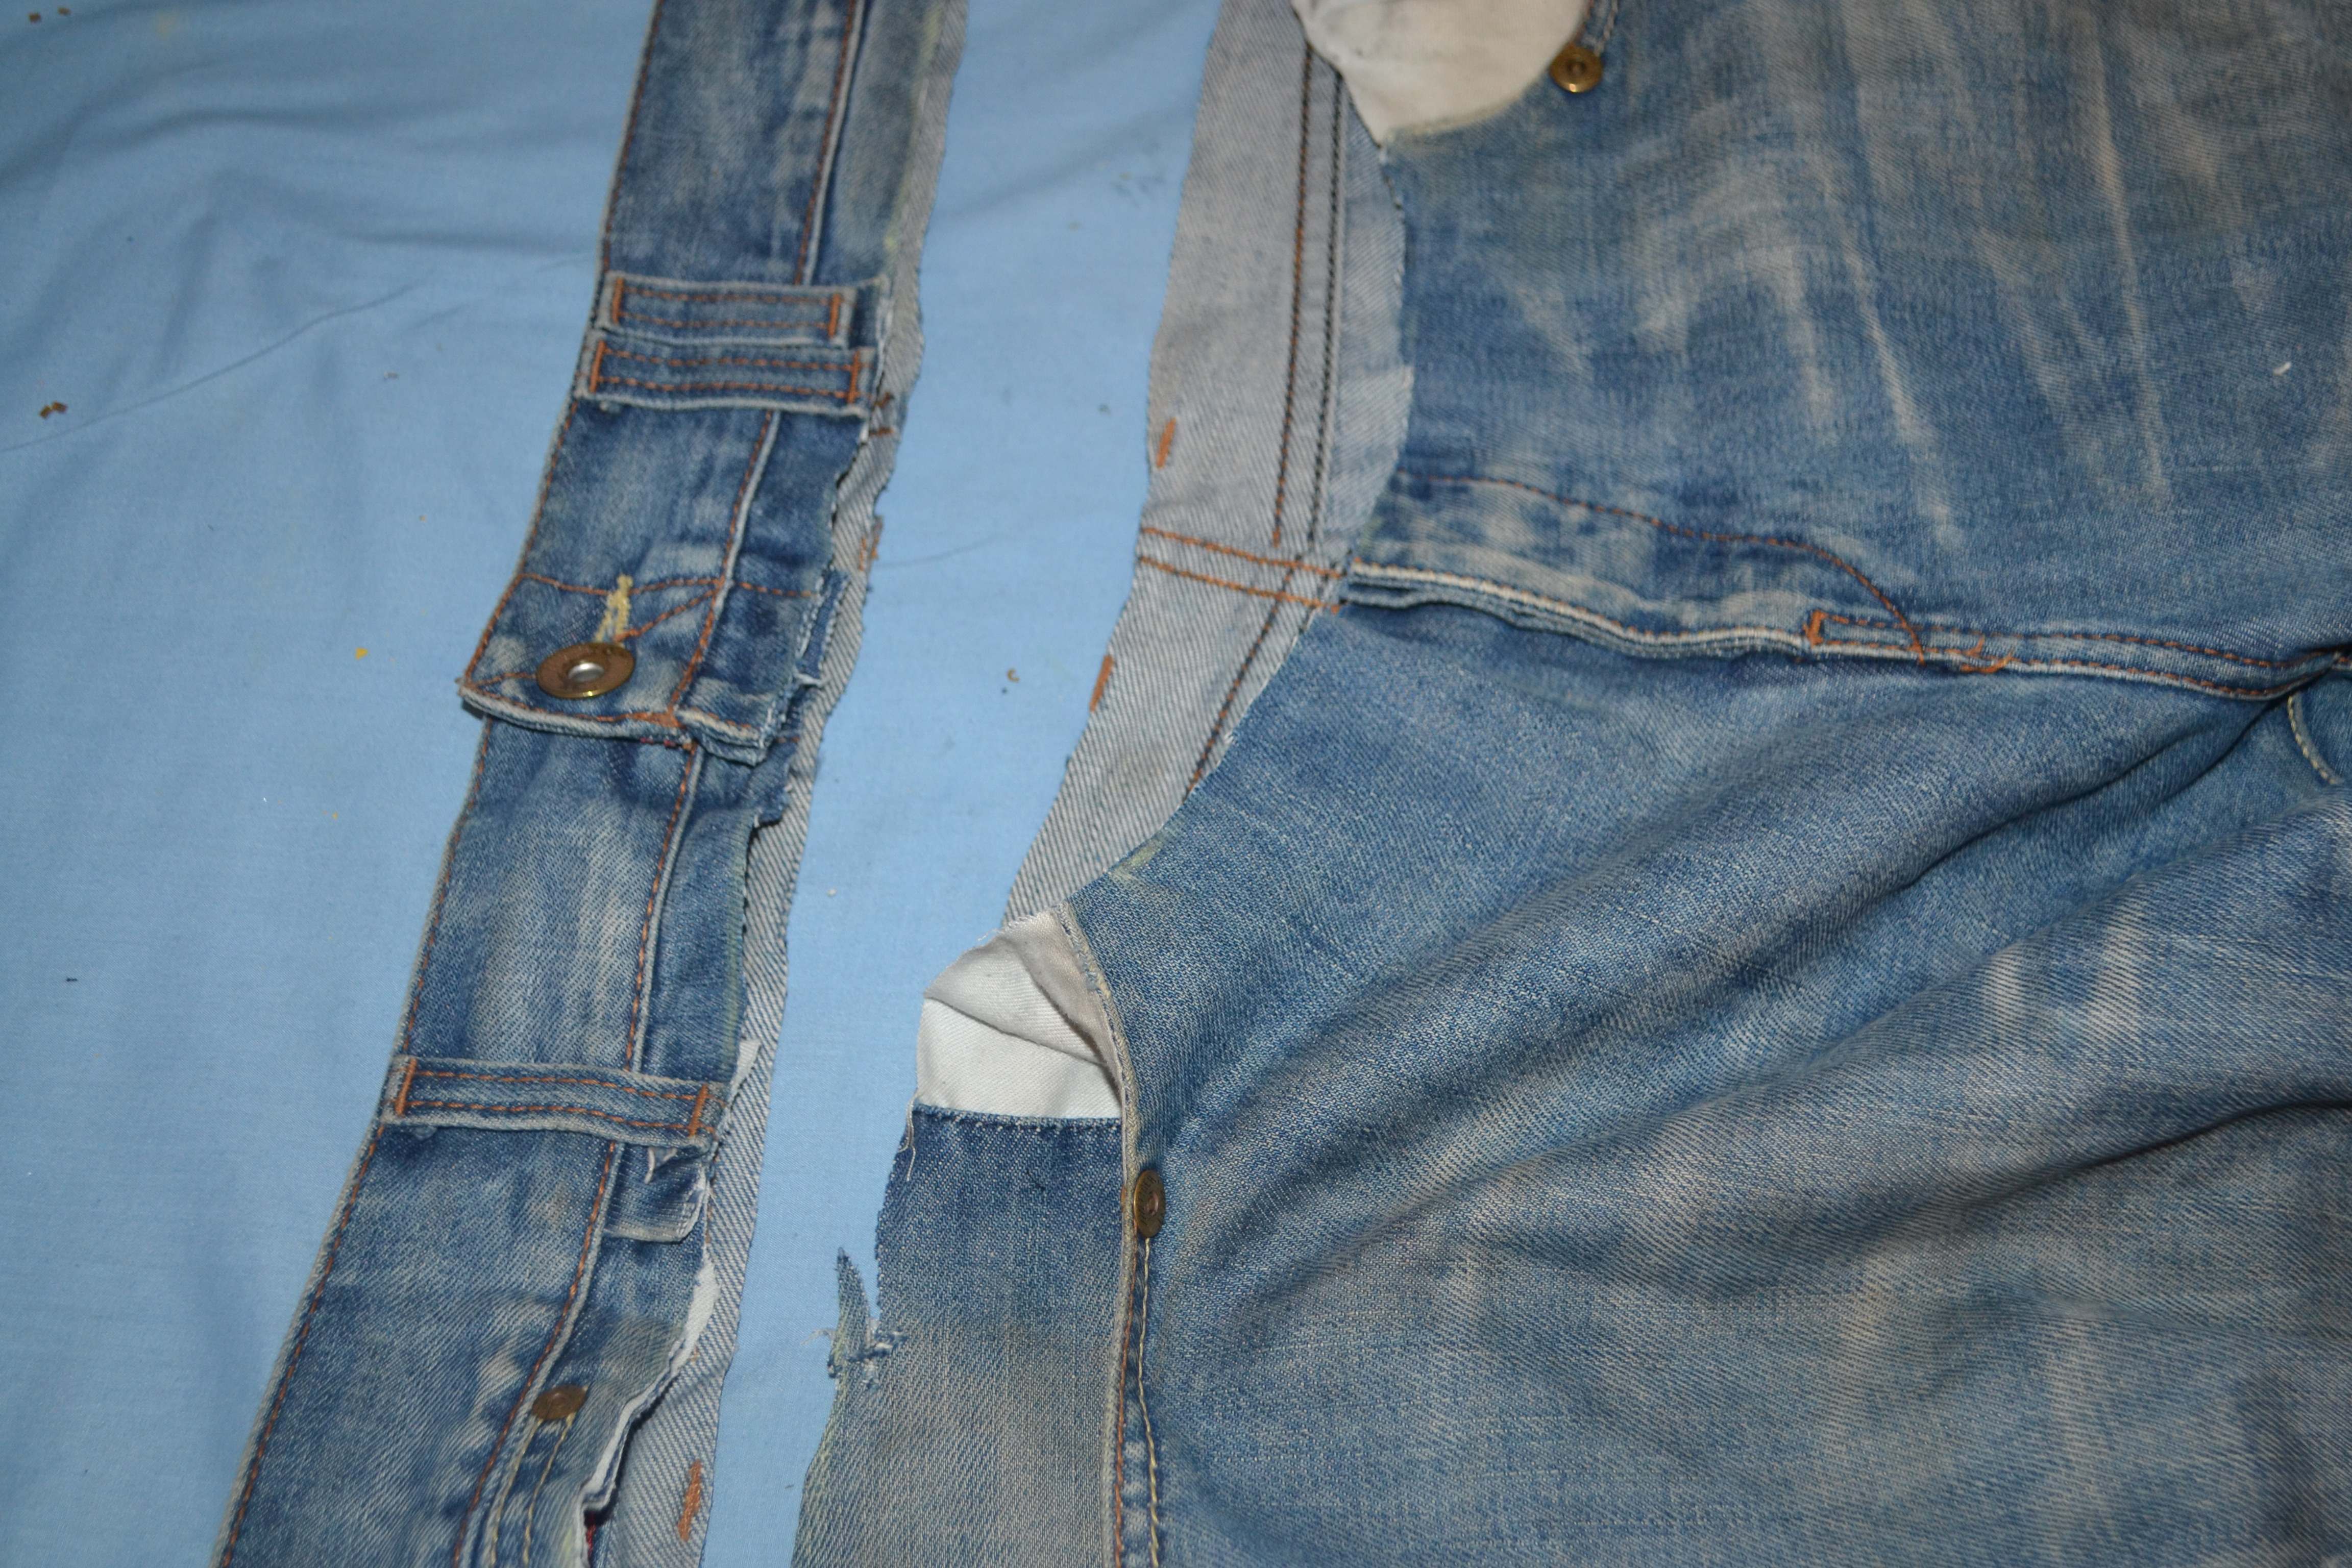 Up-Cycle Old Jeans to Cropped Denim Jacket | chinelo bally